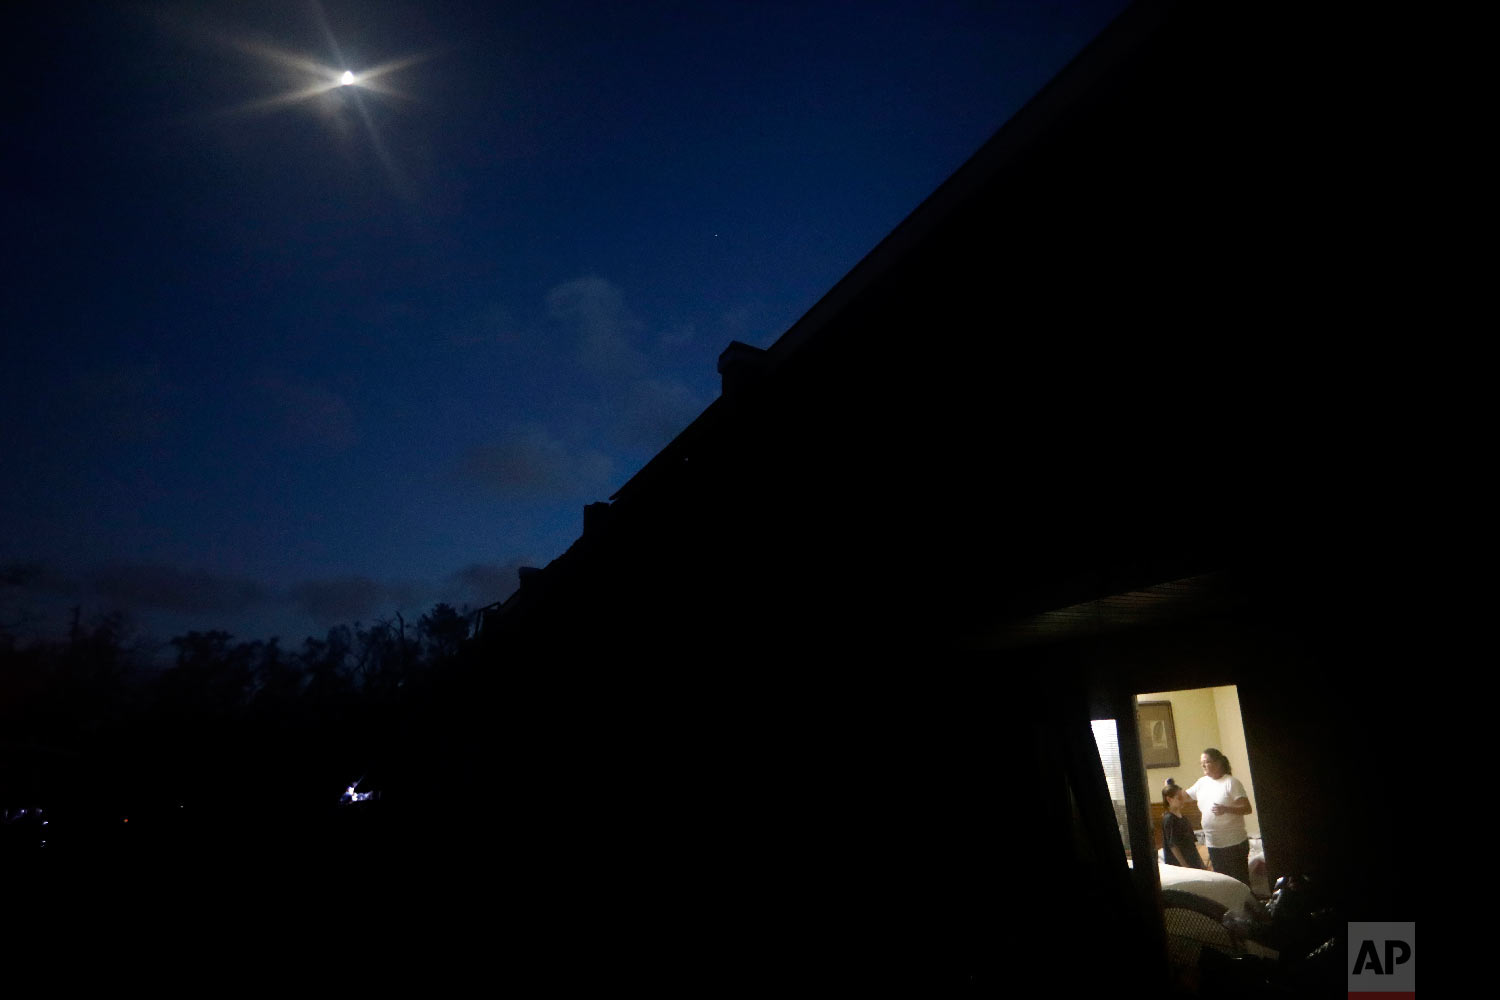 The moon shines above as Nola Davis, right, brushes the hair of granddaughter, Jayden Billingly, 10, before going to bed in their room at the damaged American Quality Lodge where they continue to live in the aftermath of Hurricane Michael, in Panama City, Fla., Oct. 16, 2018. (AP Photo/David Goldman)